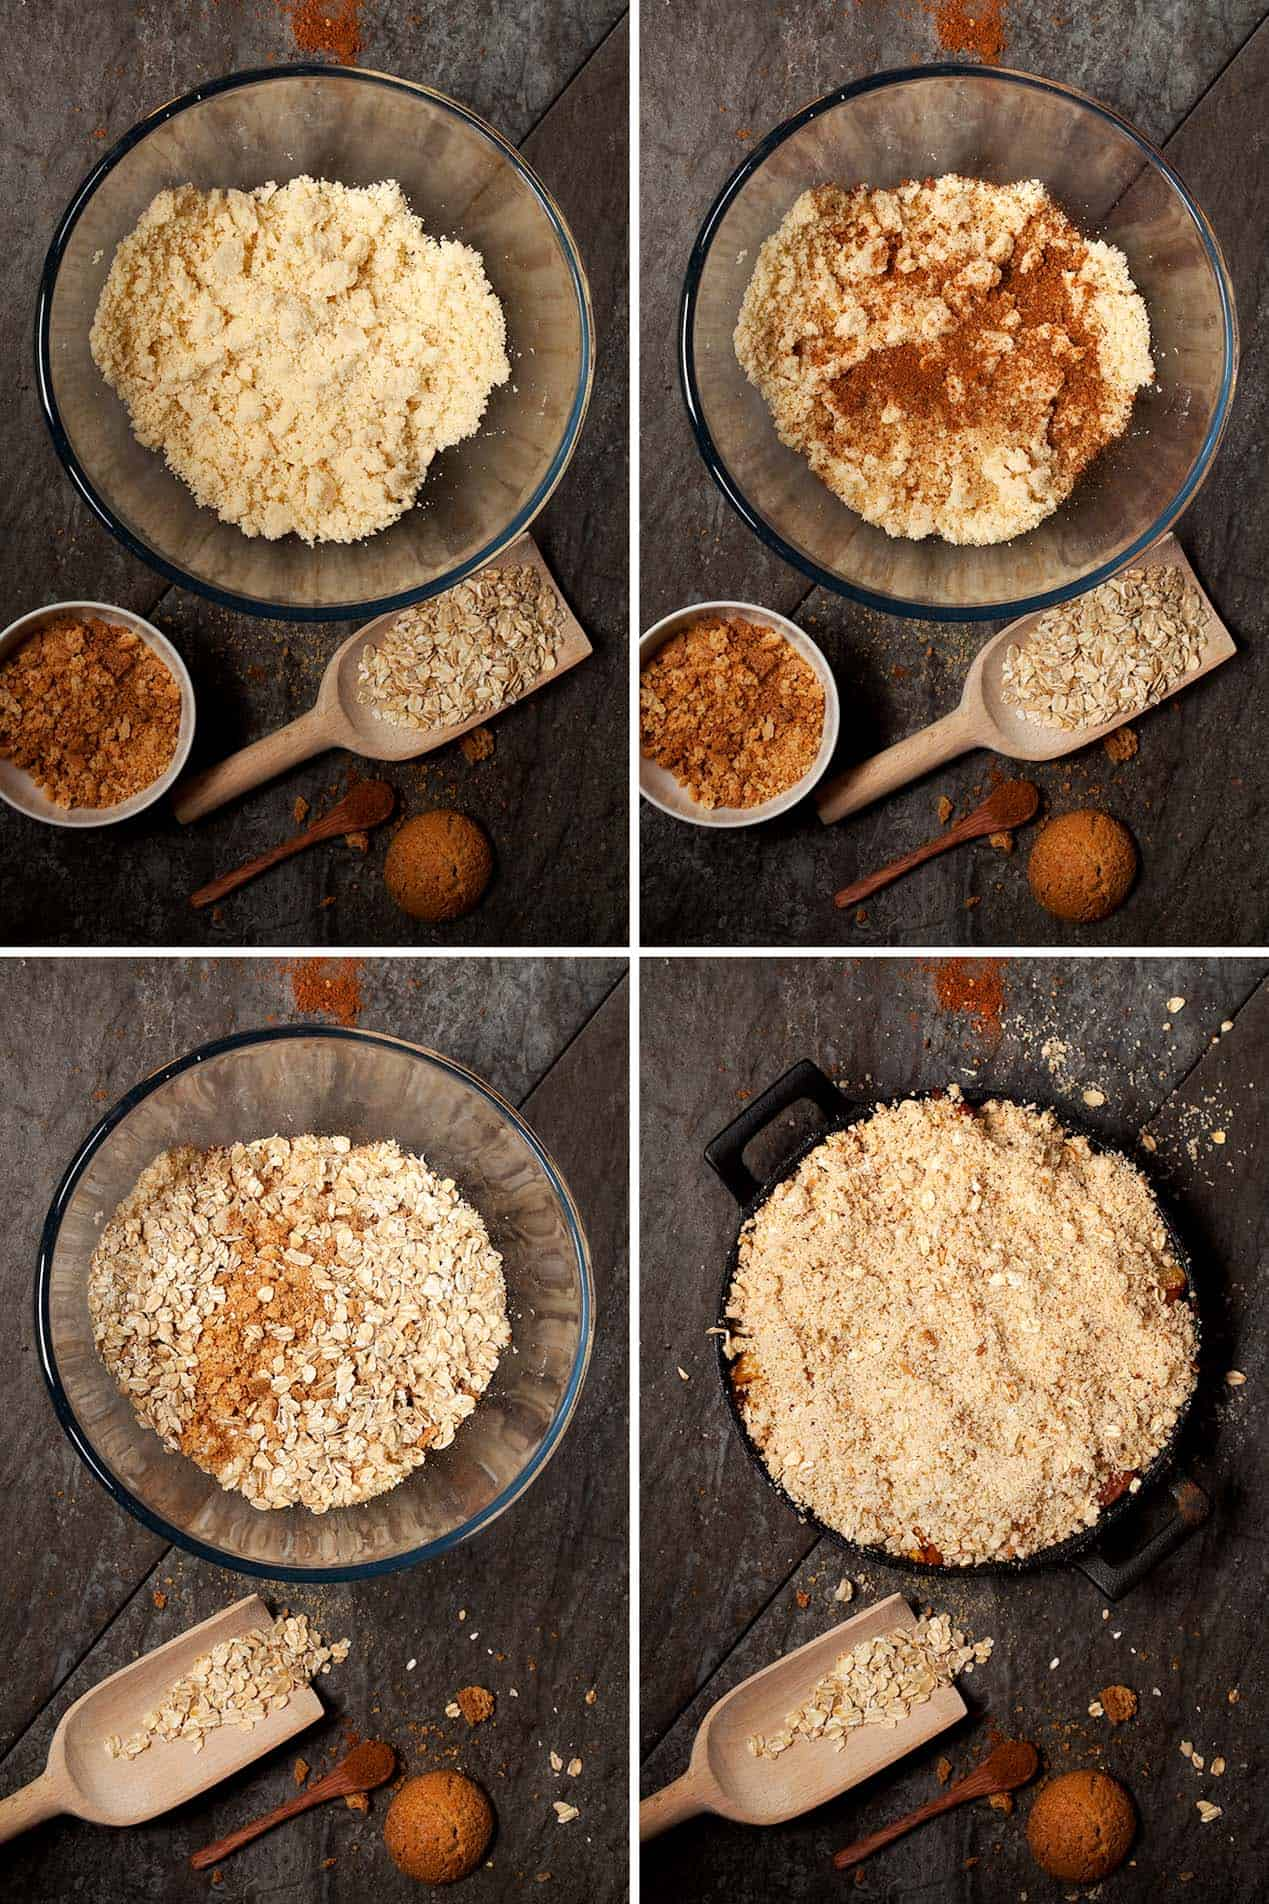 Preparing a crumble topping for peach crisp